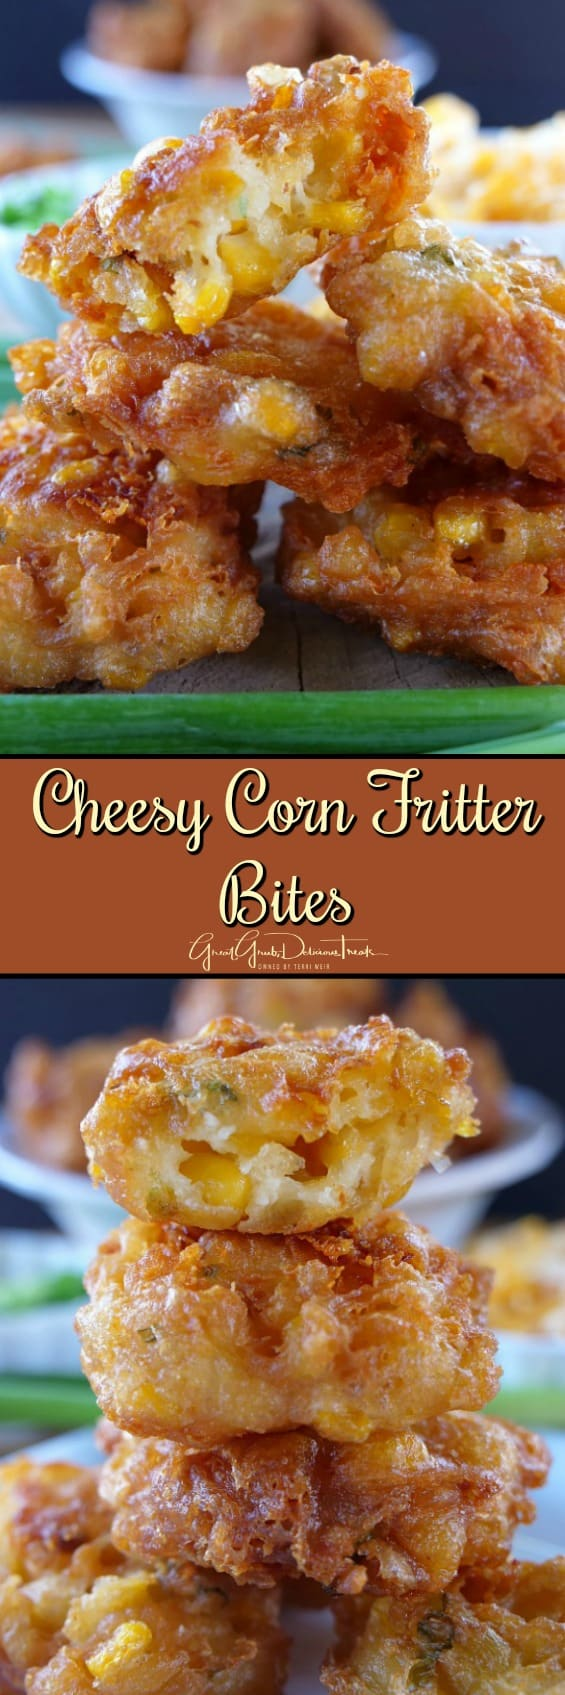 Cheesy Corn Fritter Bites